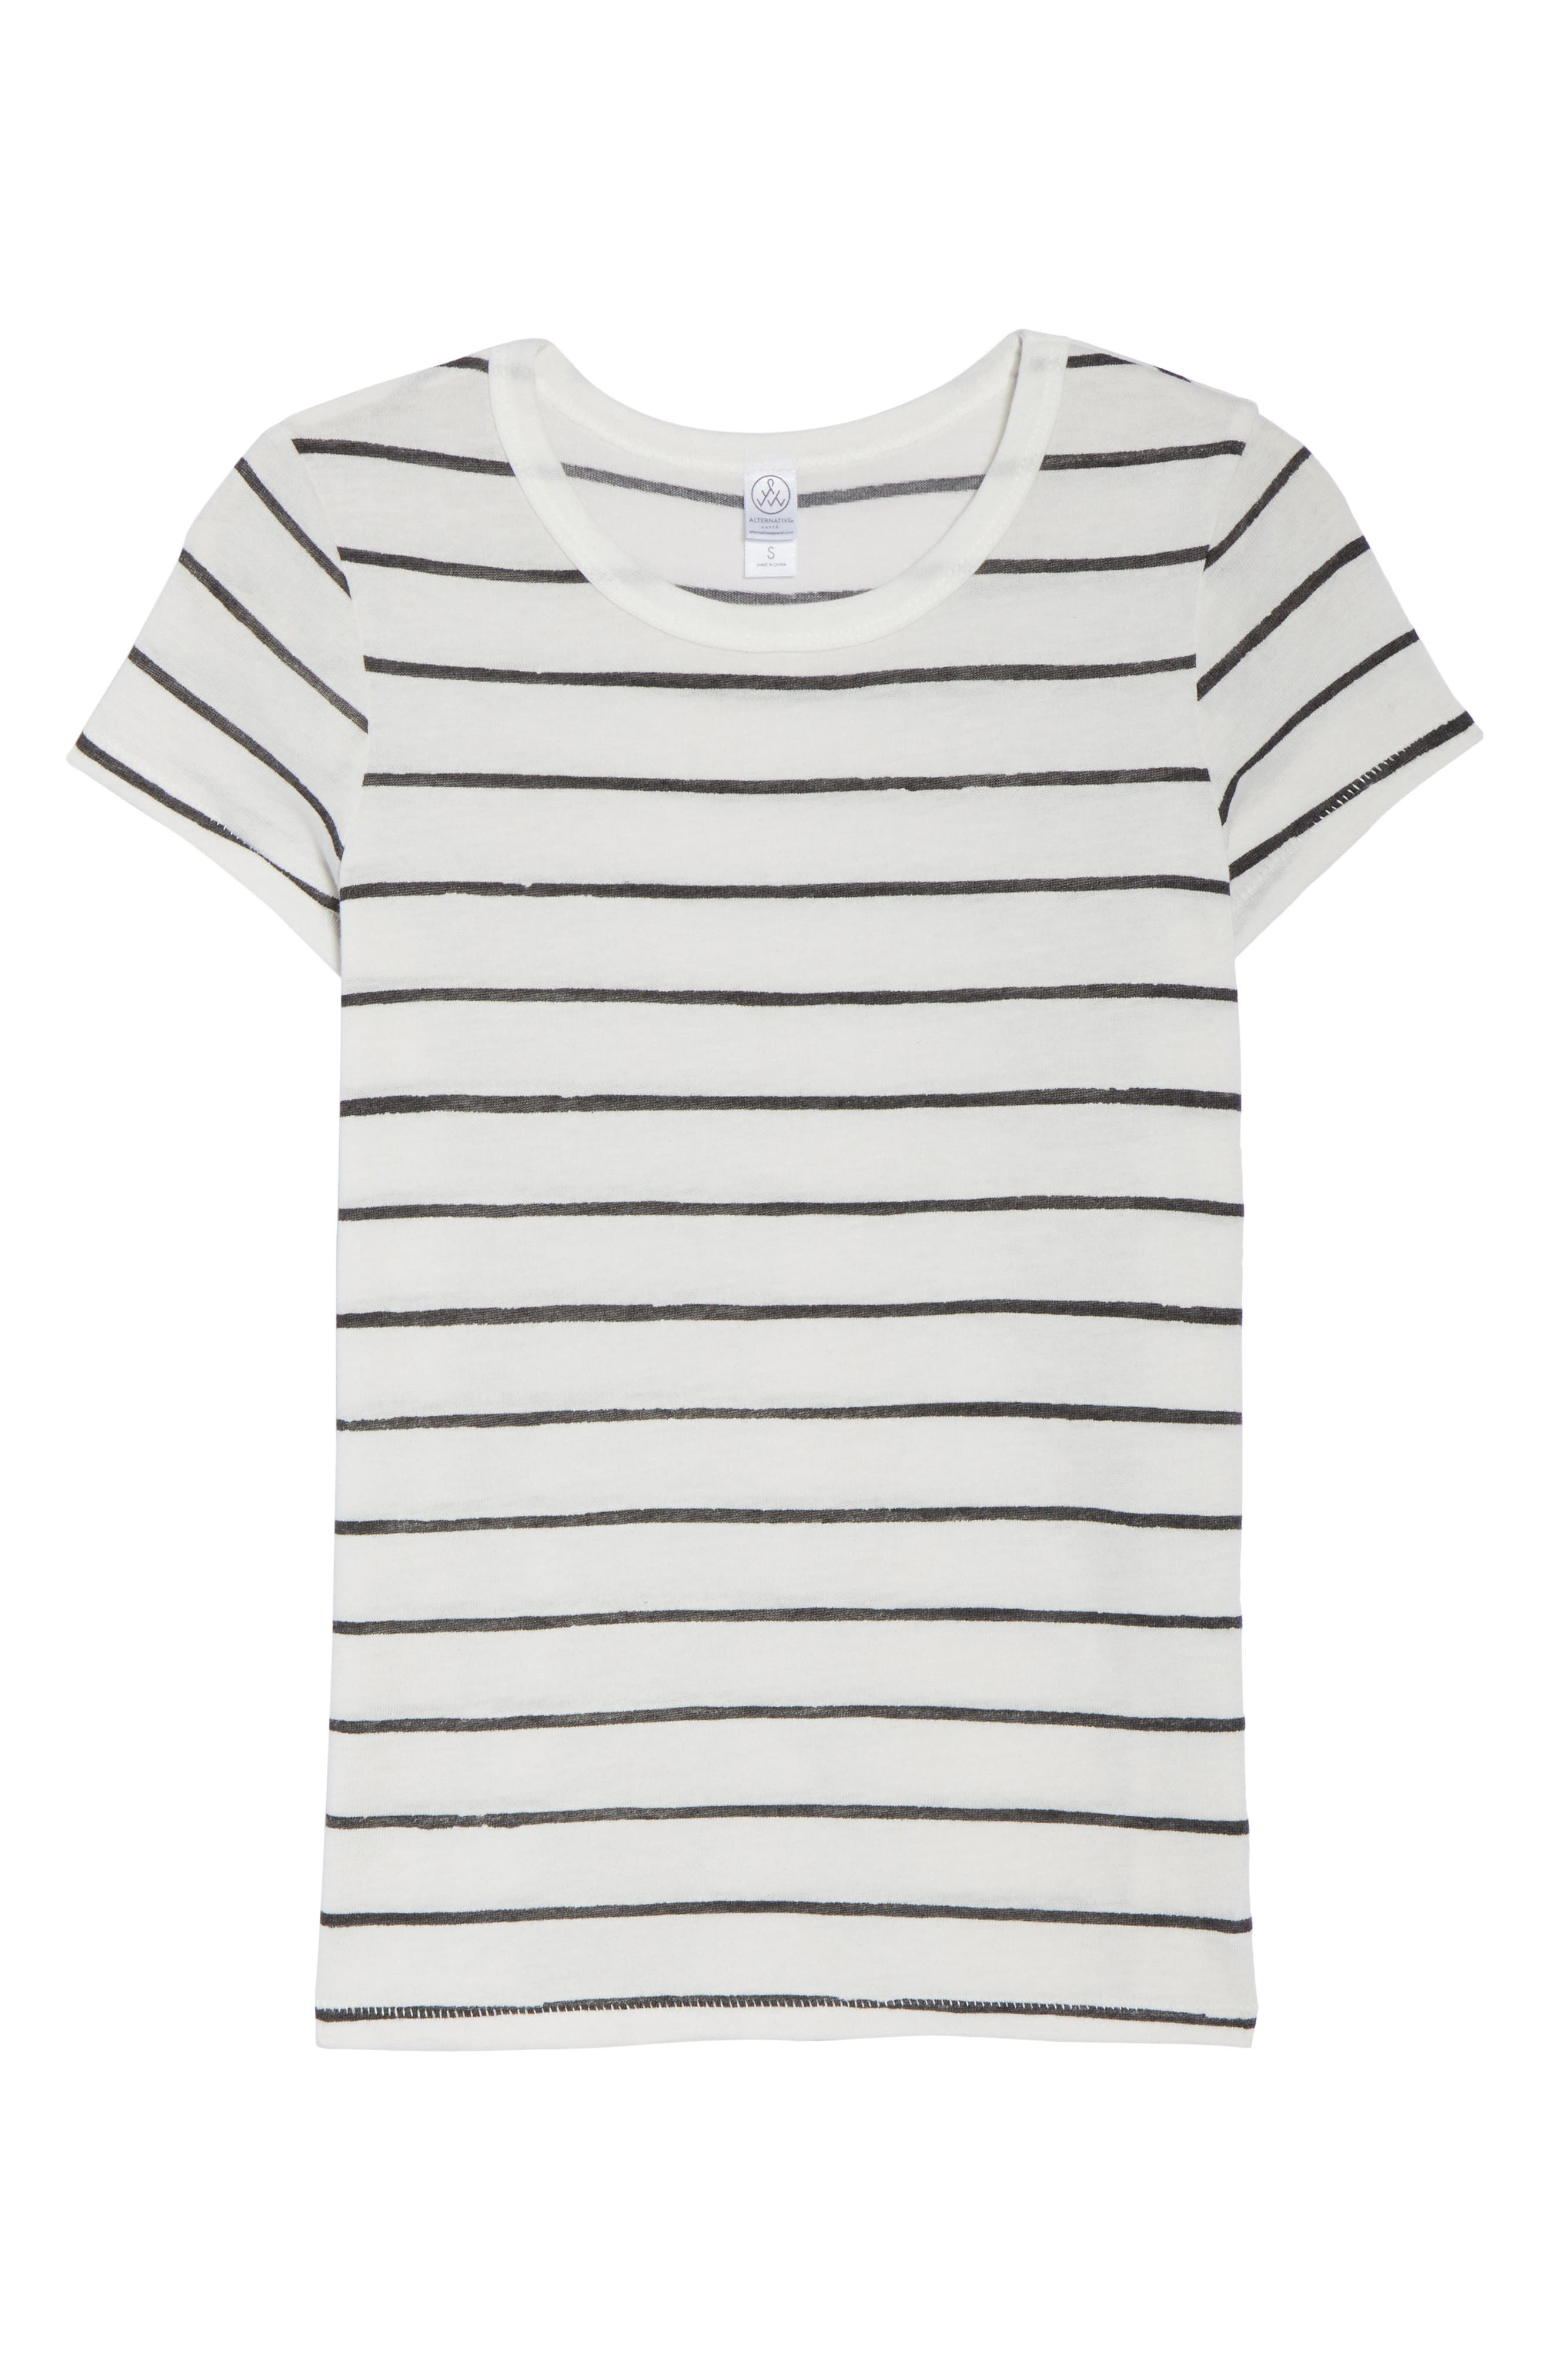 Ideal Print Tee,                             Alternate thumbnail 4, color,                             Eco Ivory Ink Stripe